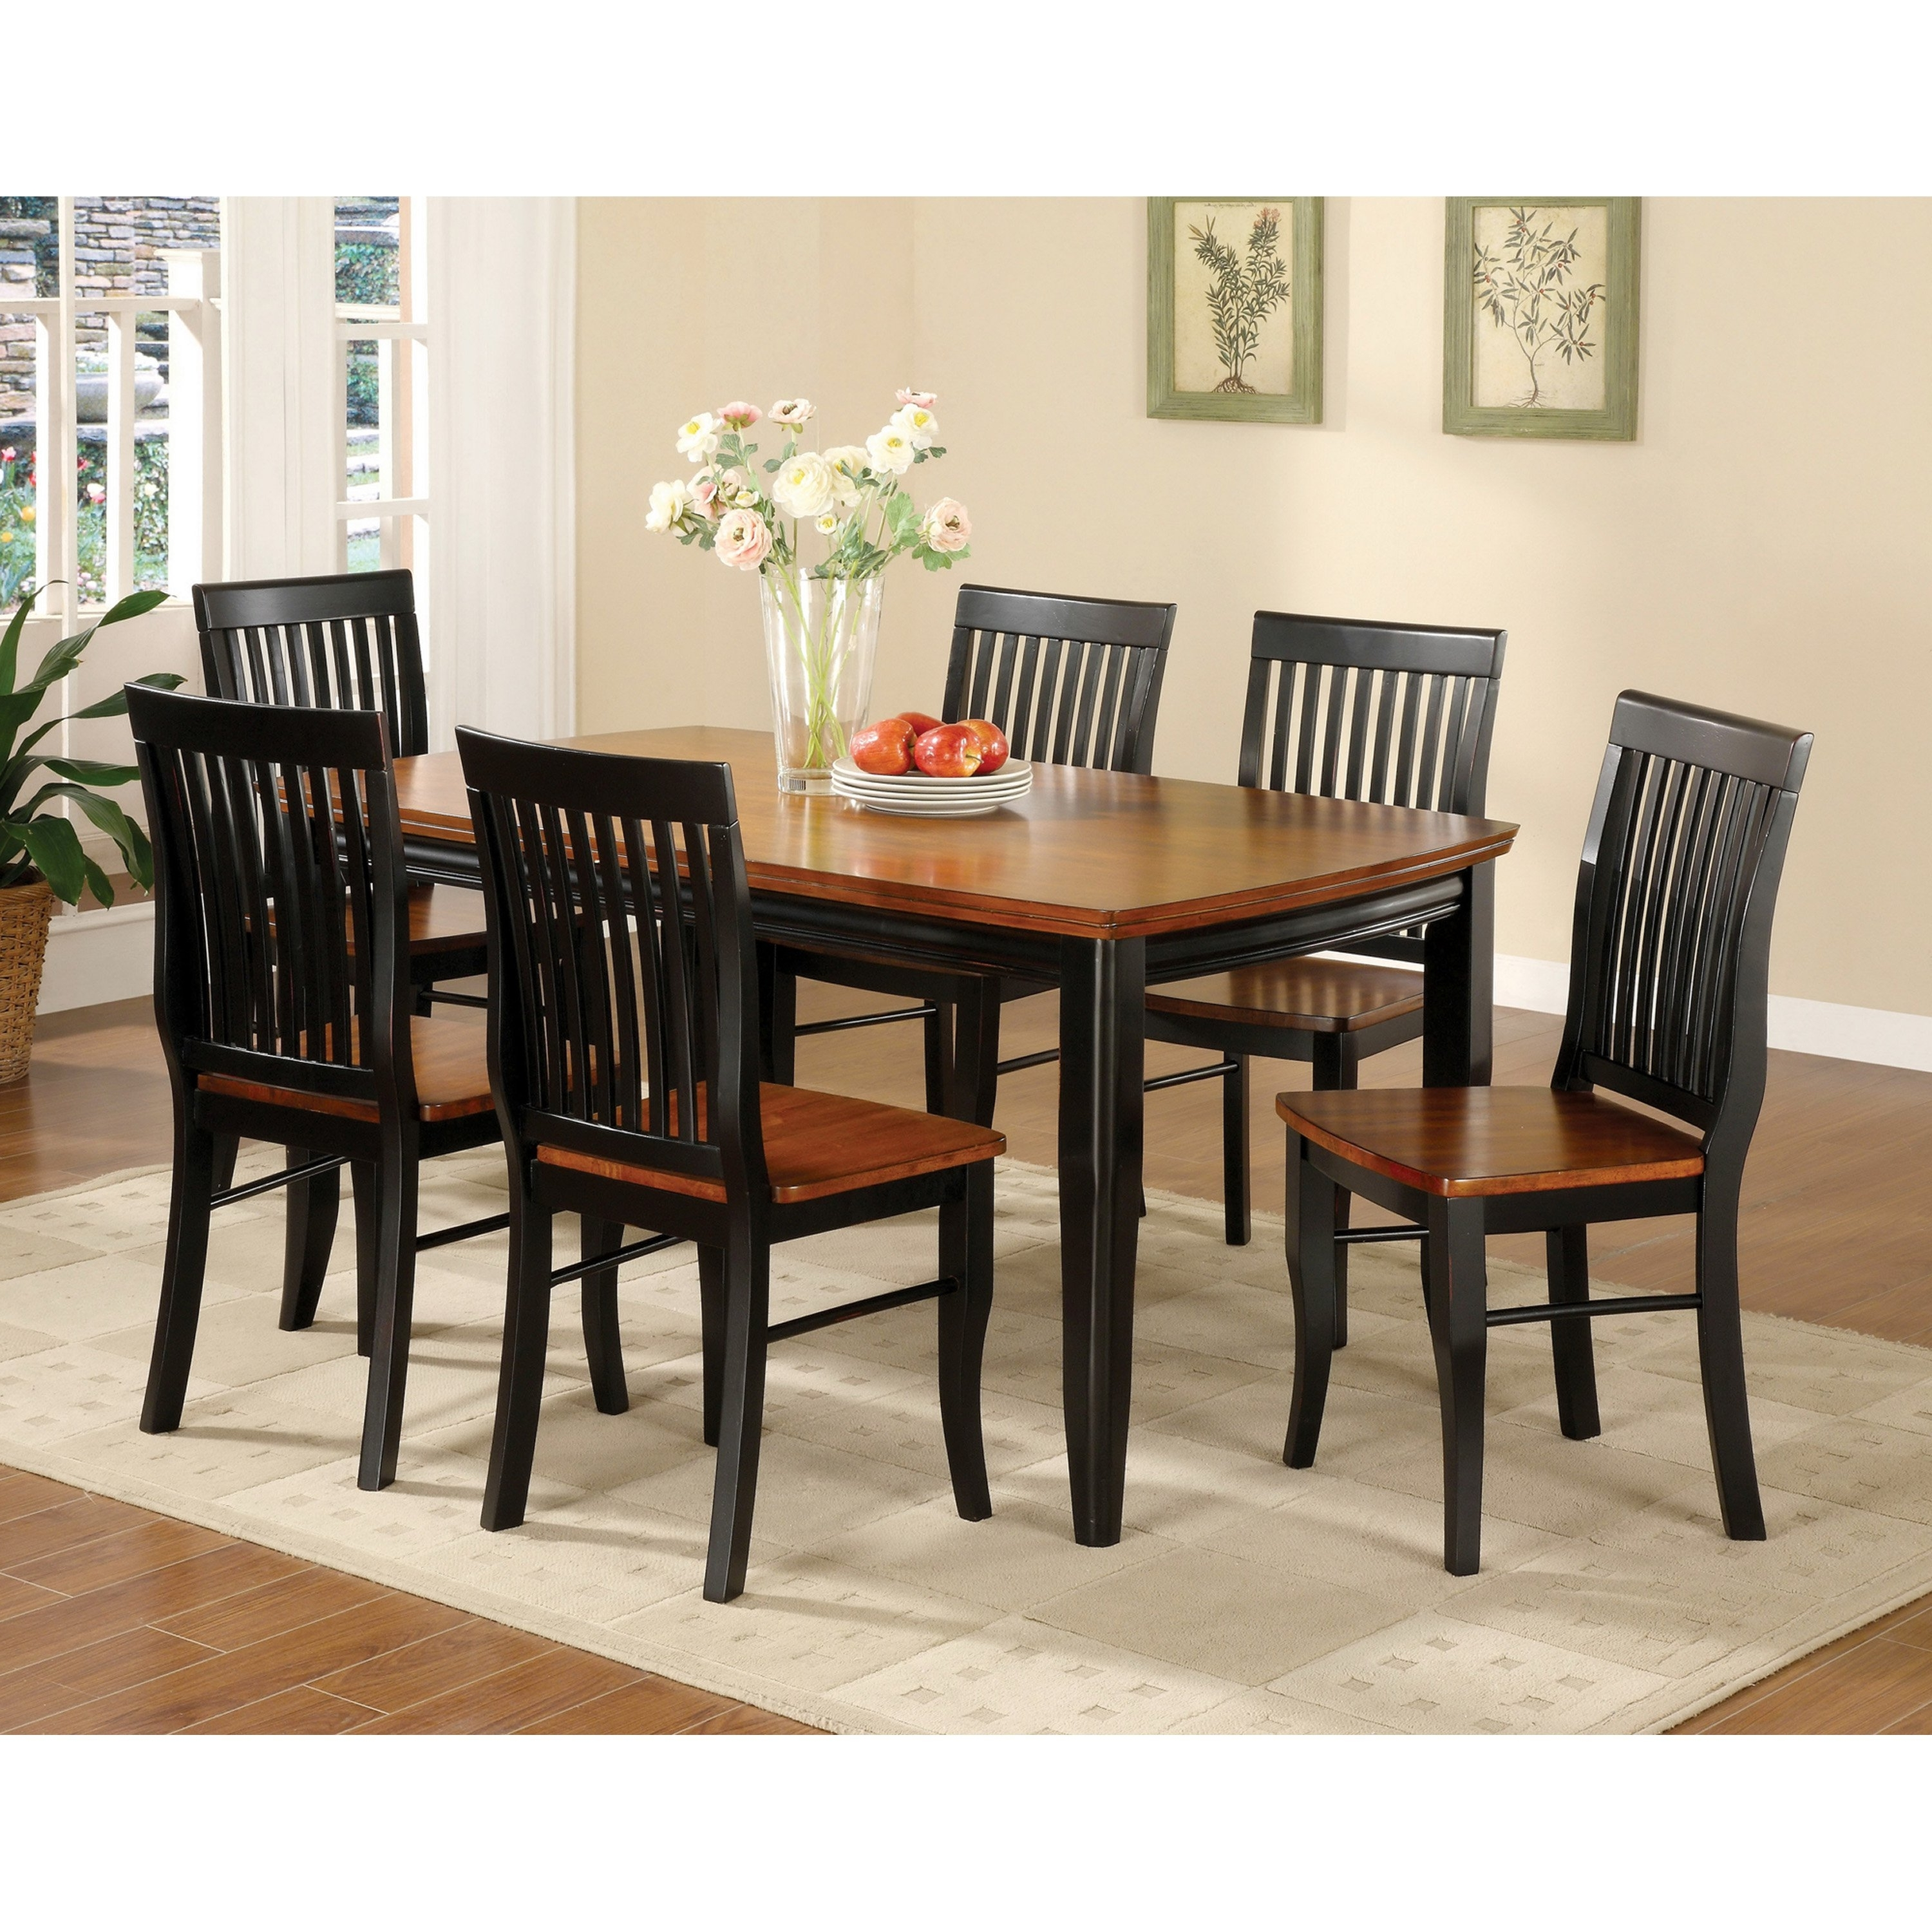 Nora Dining Tables For Most Popular Shop Furniture Of America Nora Two Tone Solid Wood Slat Back Dining (View 22 of 25)